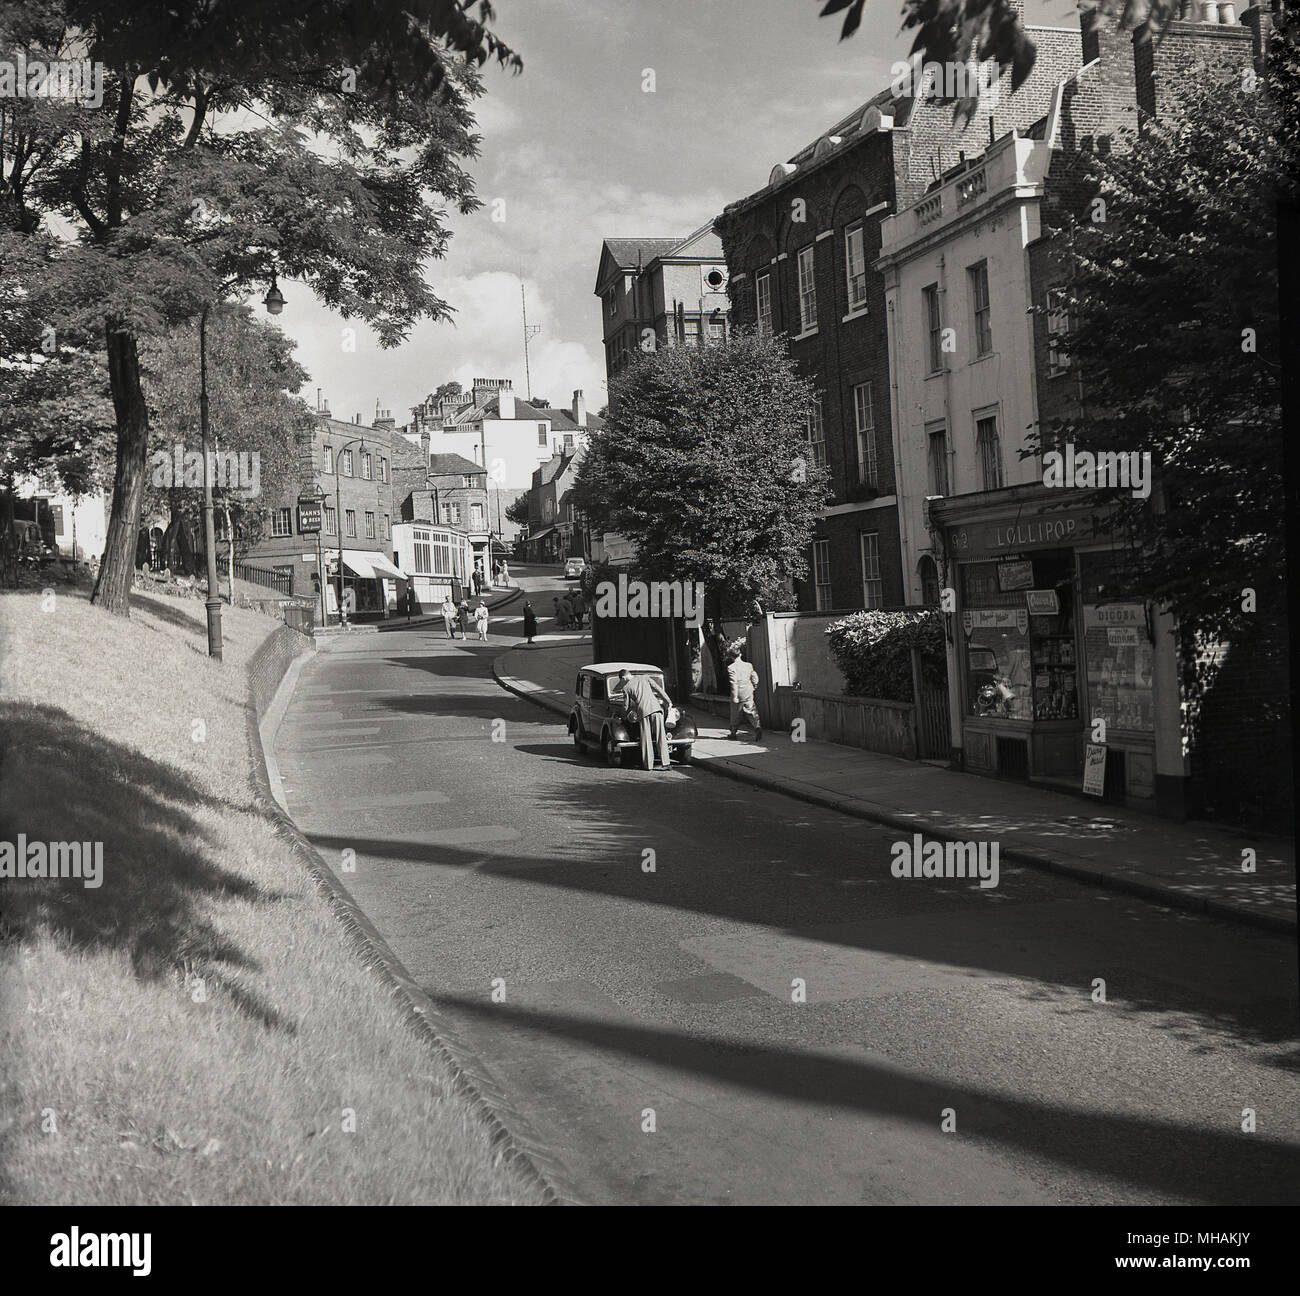 1950s, historical picture of a quiet post-war Hampstead high street. This picture by J Allan Cash was most likely taken on a s Sunday morning as there no motorcars on the road, apart from one parked car. No 92 is a newsagent's 'Lollipop', selling tobacco such as 'Gold Flake'. Hampstead was a pretty leafy village in this era and is now promoted as the 'orginal urban village'. - Stock Image